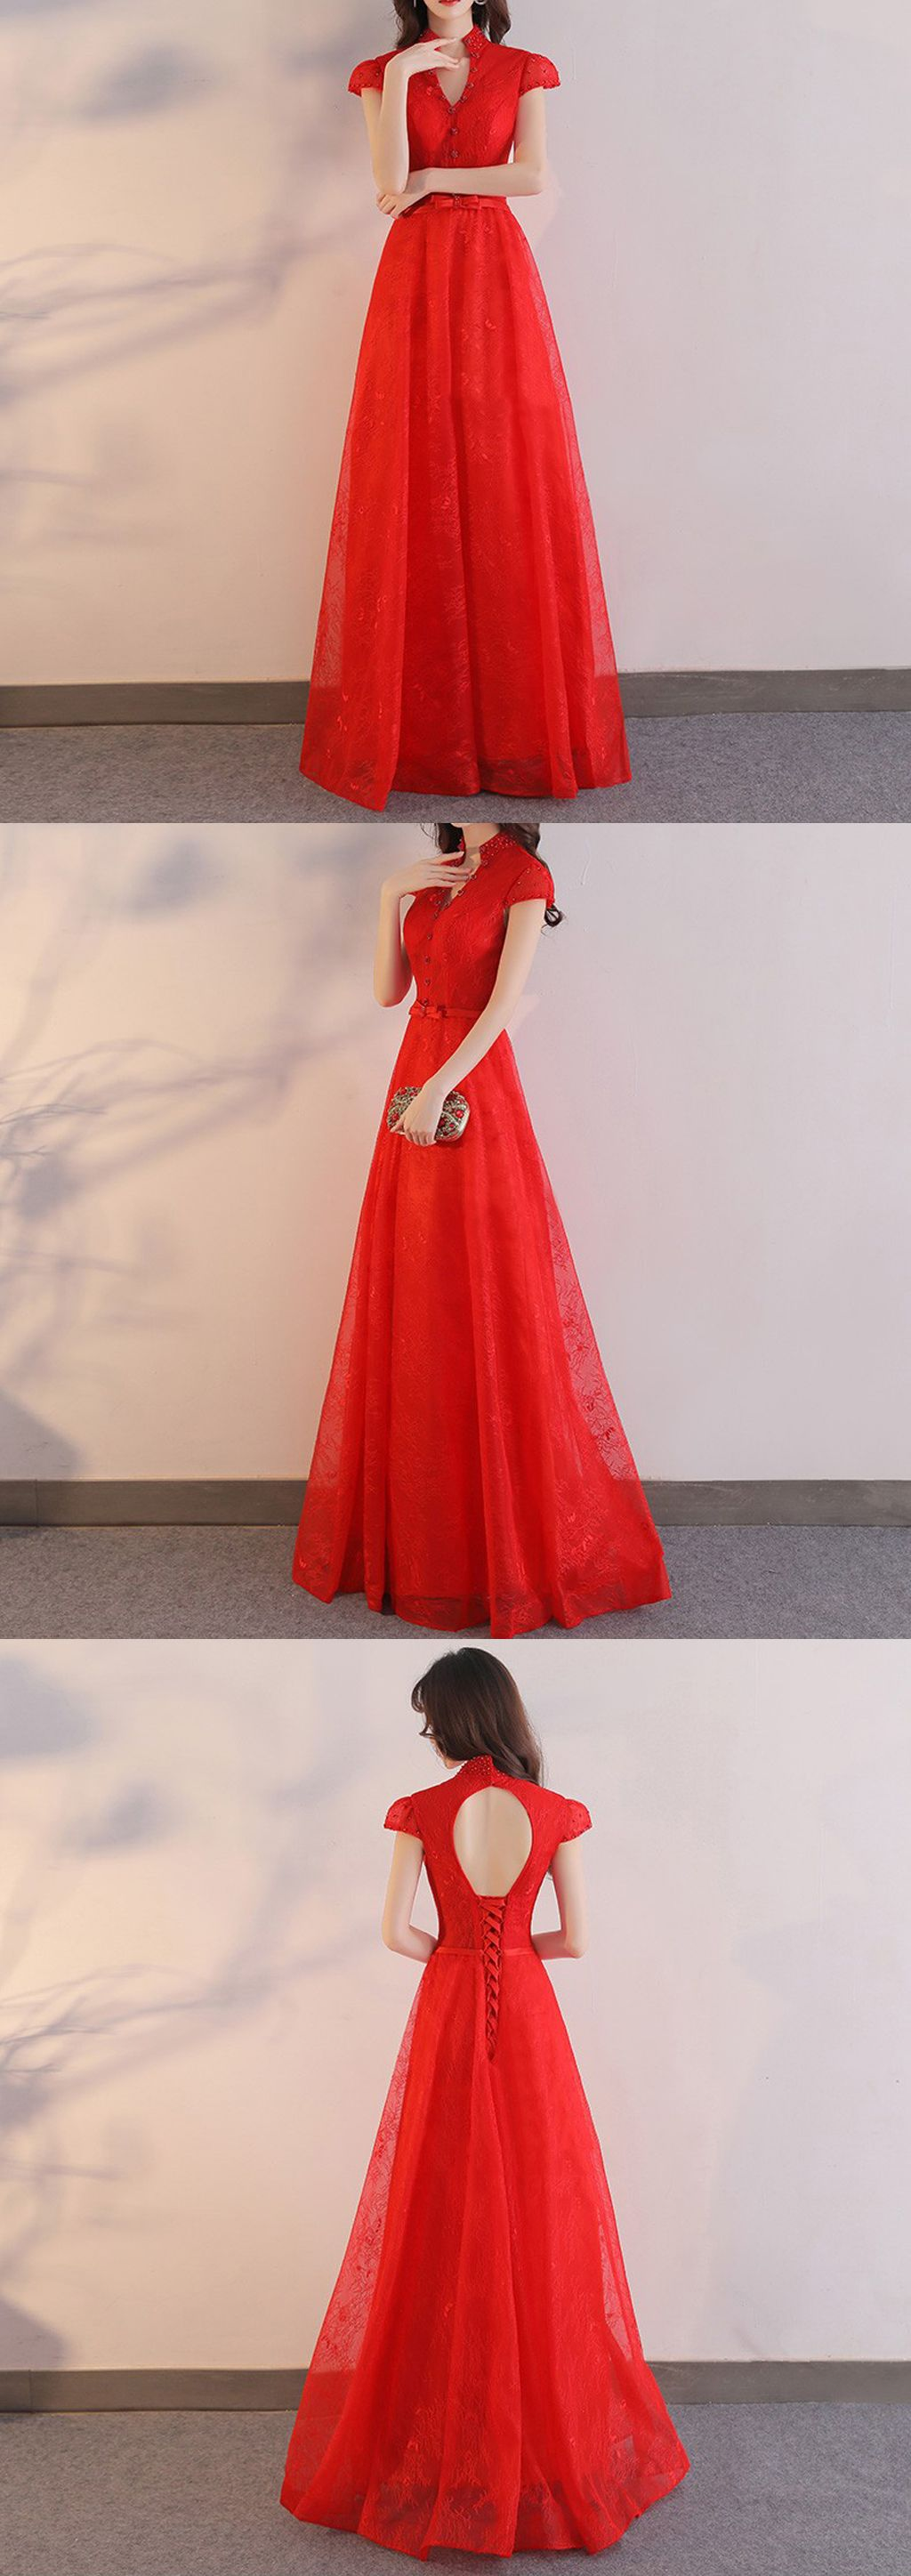 Elegant cap sleeve unique stand collar red lace key hole back long